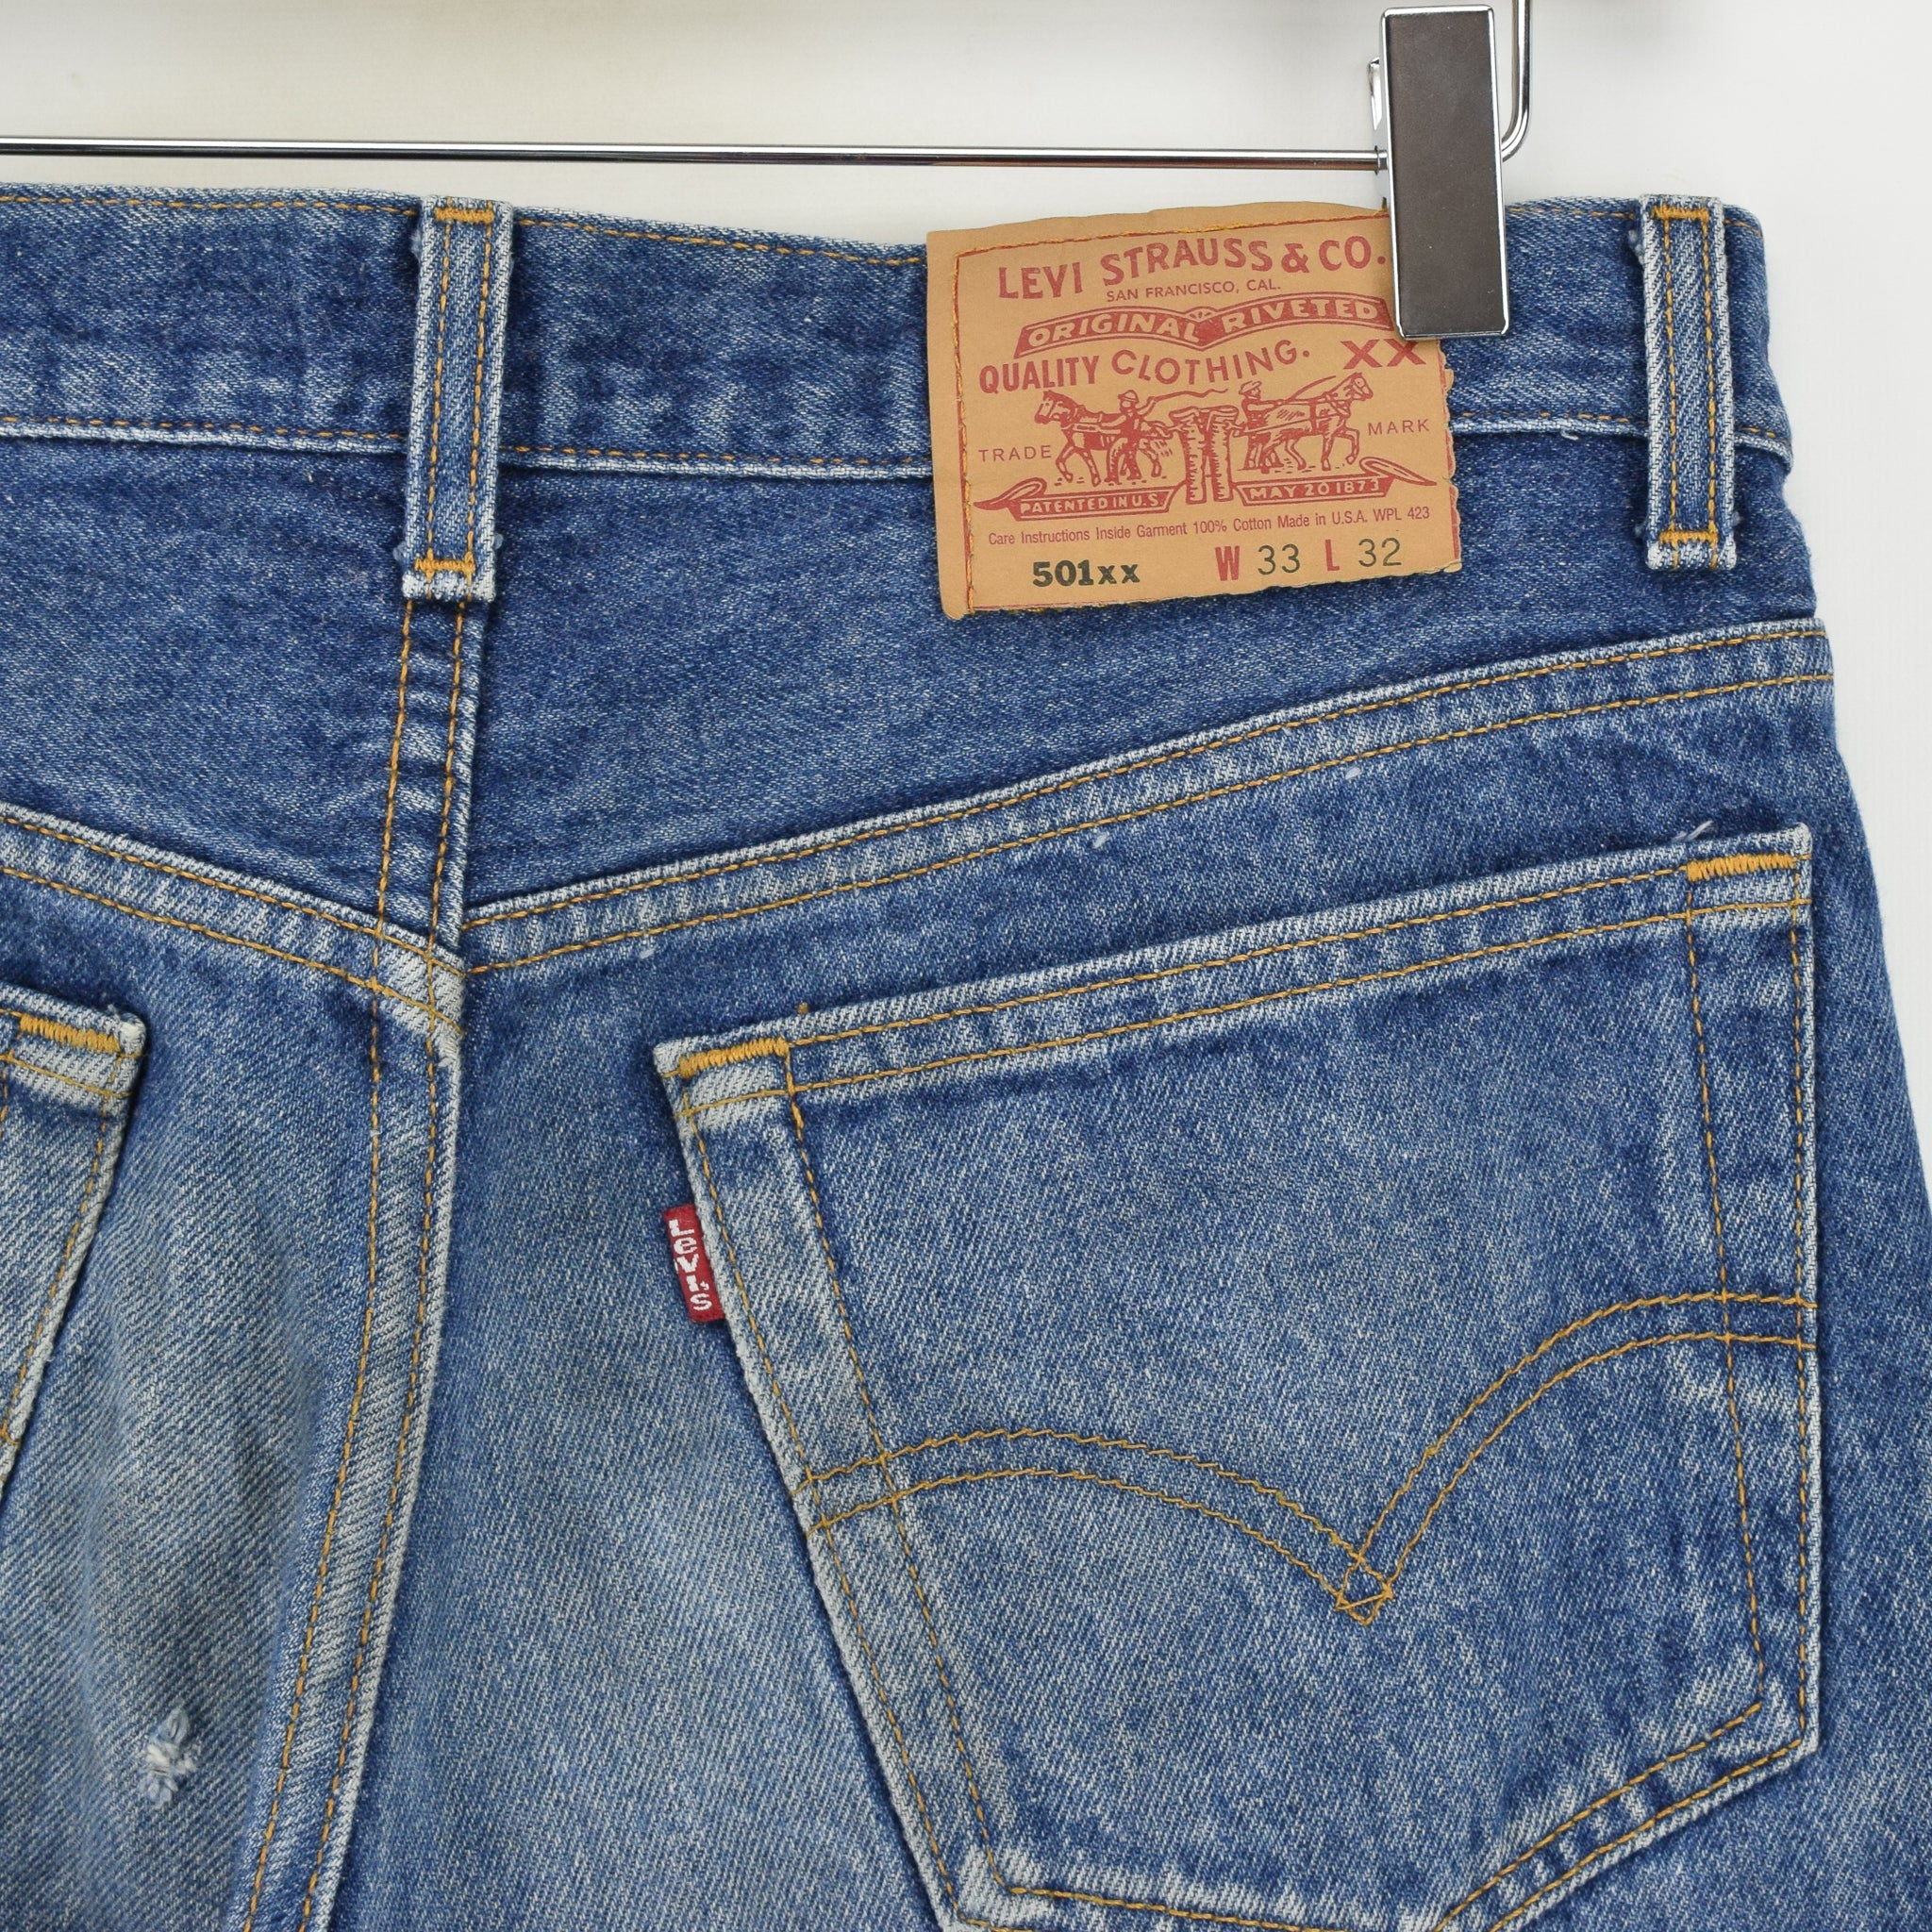 Vintage Levi Red Tab 501xx Stonewash Blue Denim Jeans Pant Made in USA 30 W 30 L back waist pocket badge